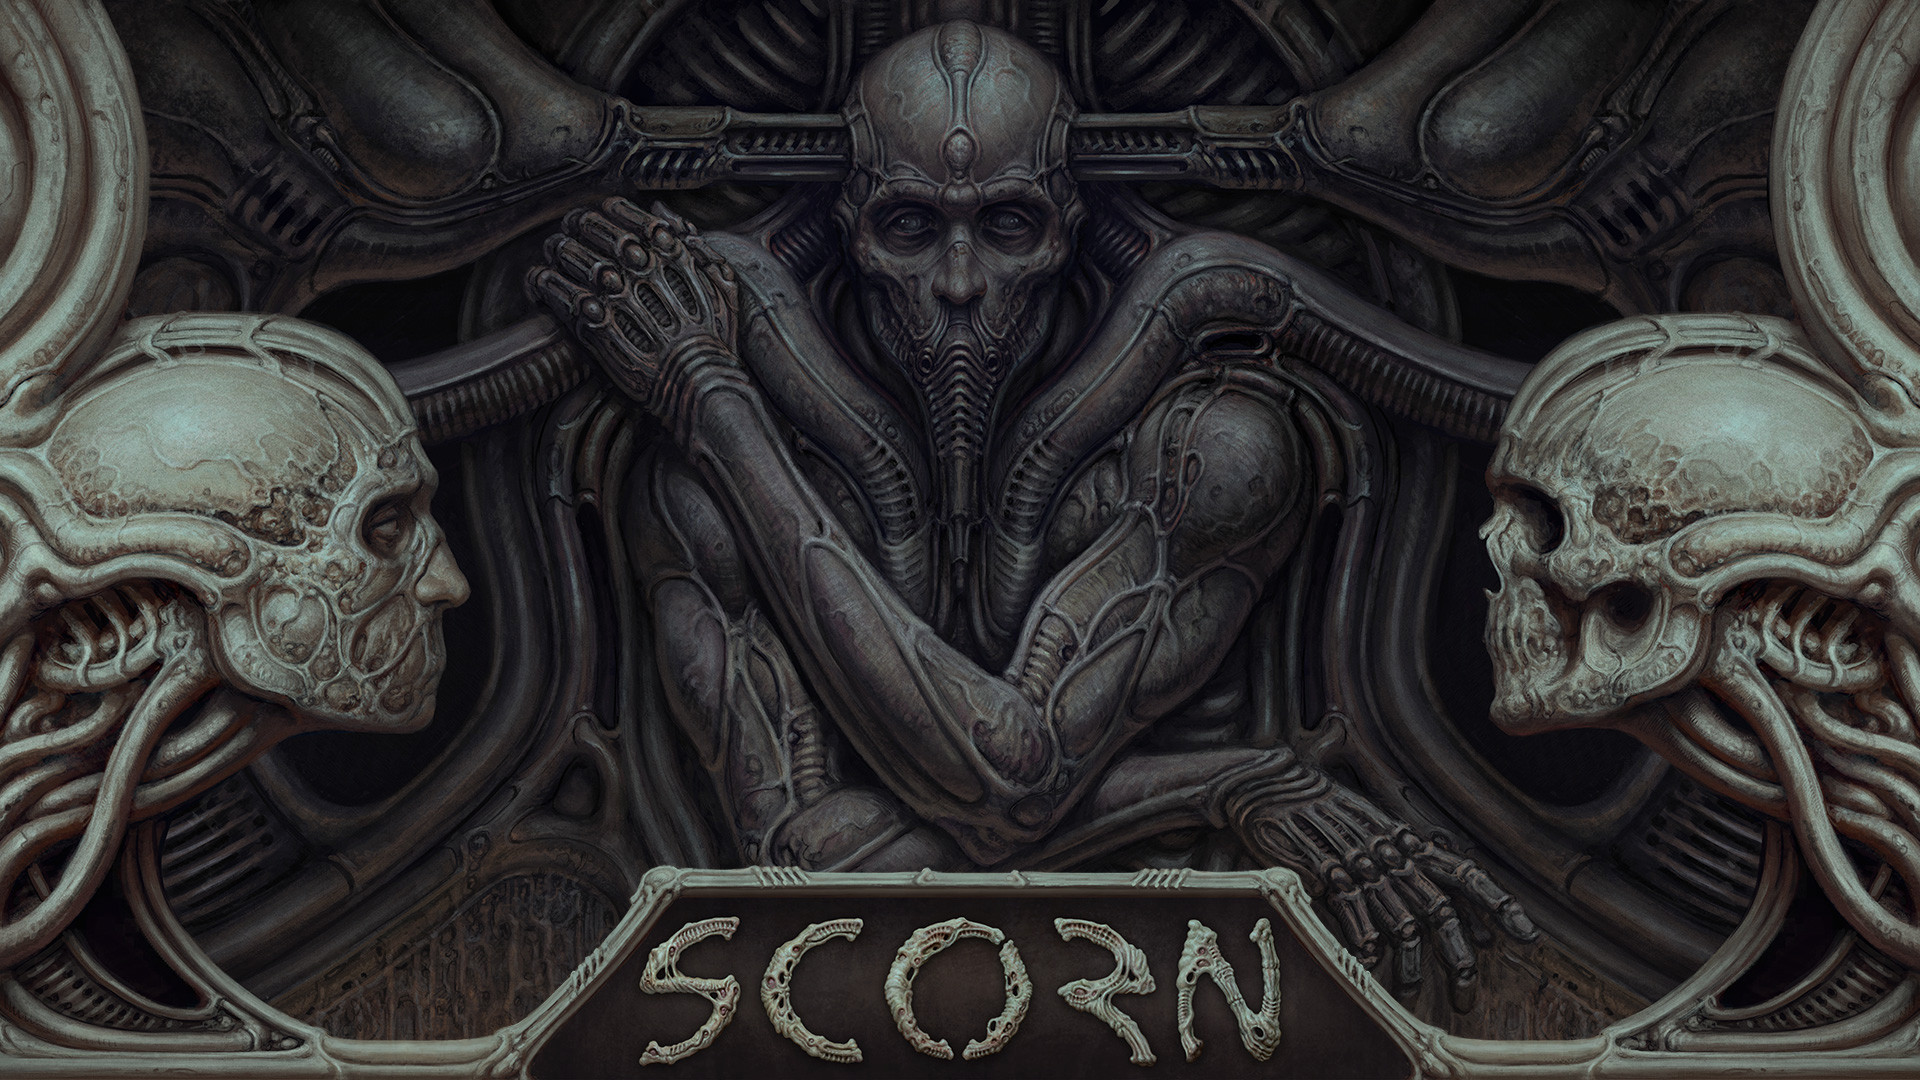 Scorn: update, Trailer, Gameplay and All You Should Know